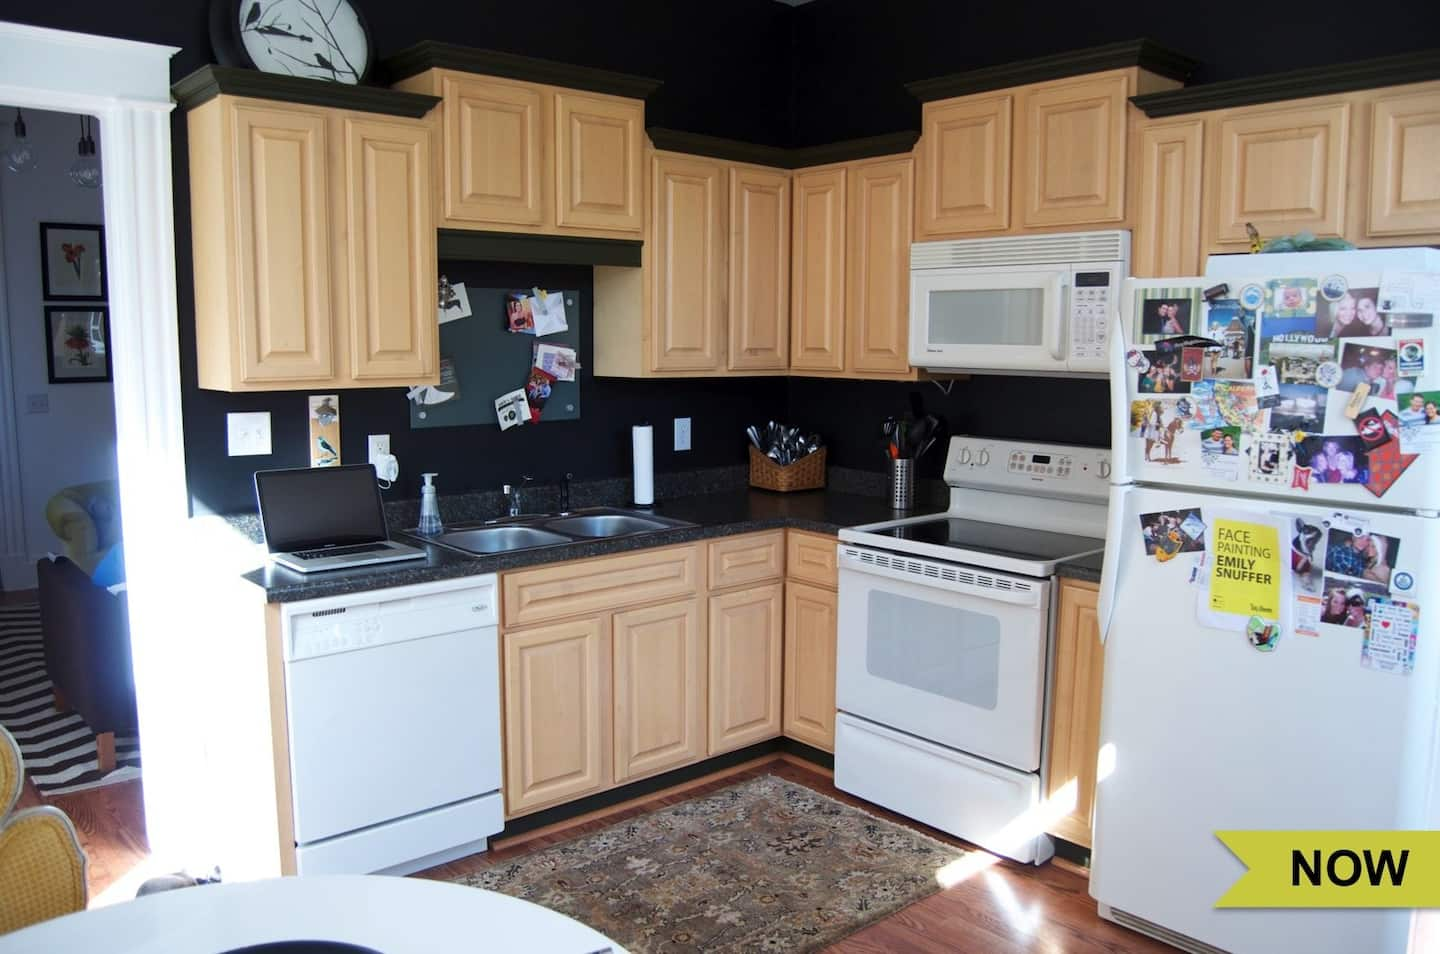 Small Kitchen With Light Wood Cabinets Dark Countertop And Backsplash